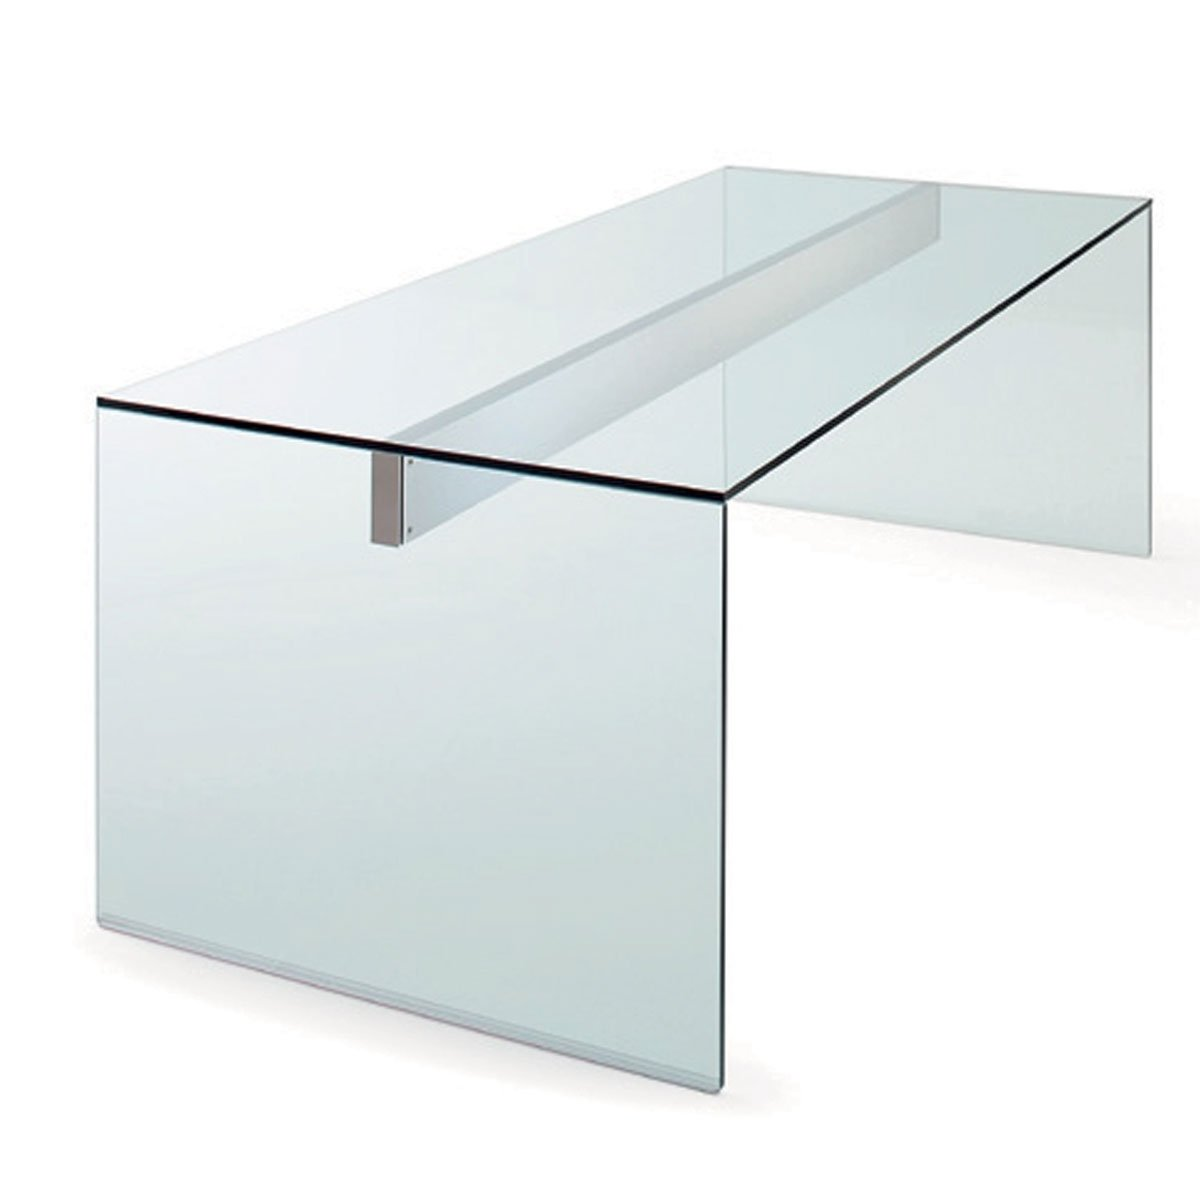 Air glass desk by gallotti radice klarity glass for Glass furniture